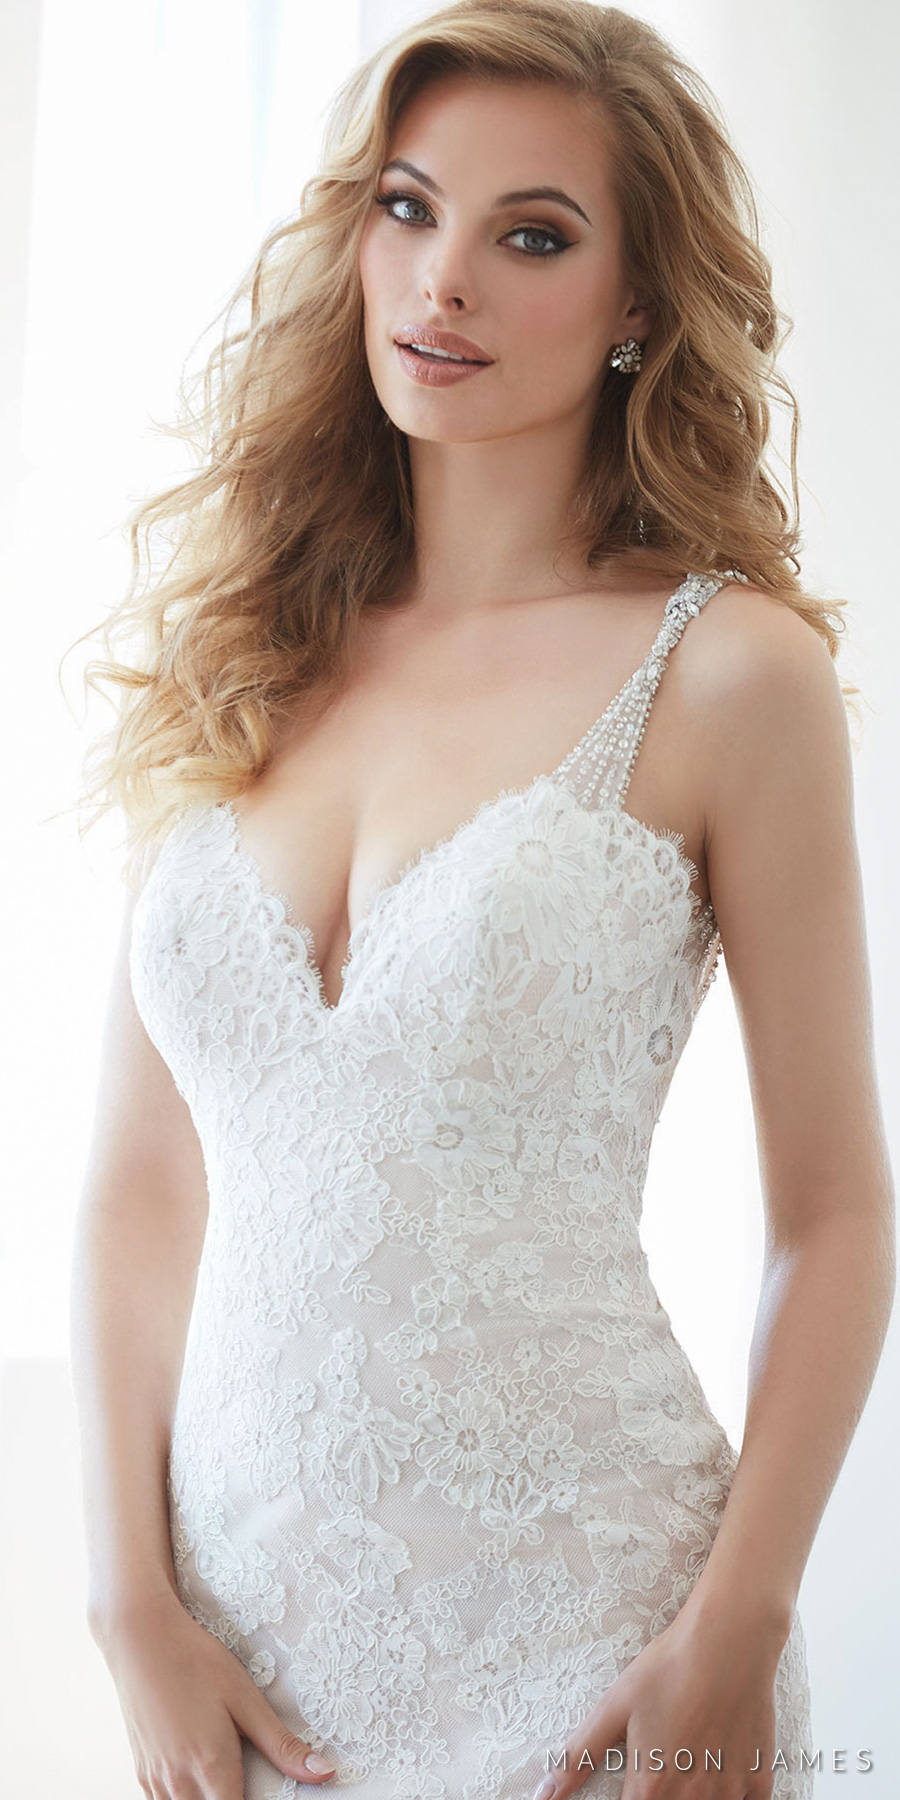 madison james spring 2017 bridal sleeveless embellished strap sweetheart neckline full embroidered lace elegant sheath sexy wedding dress open low back chapel train (mj314) zv